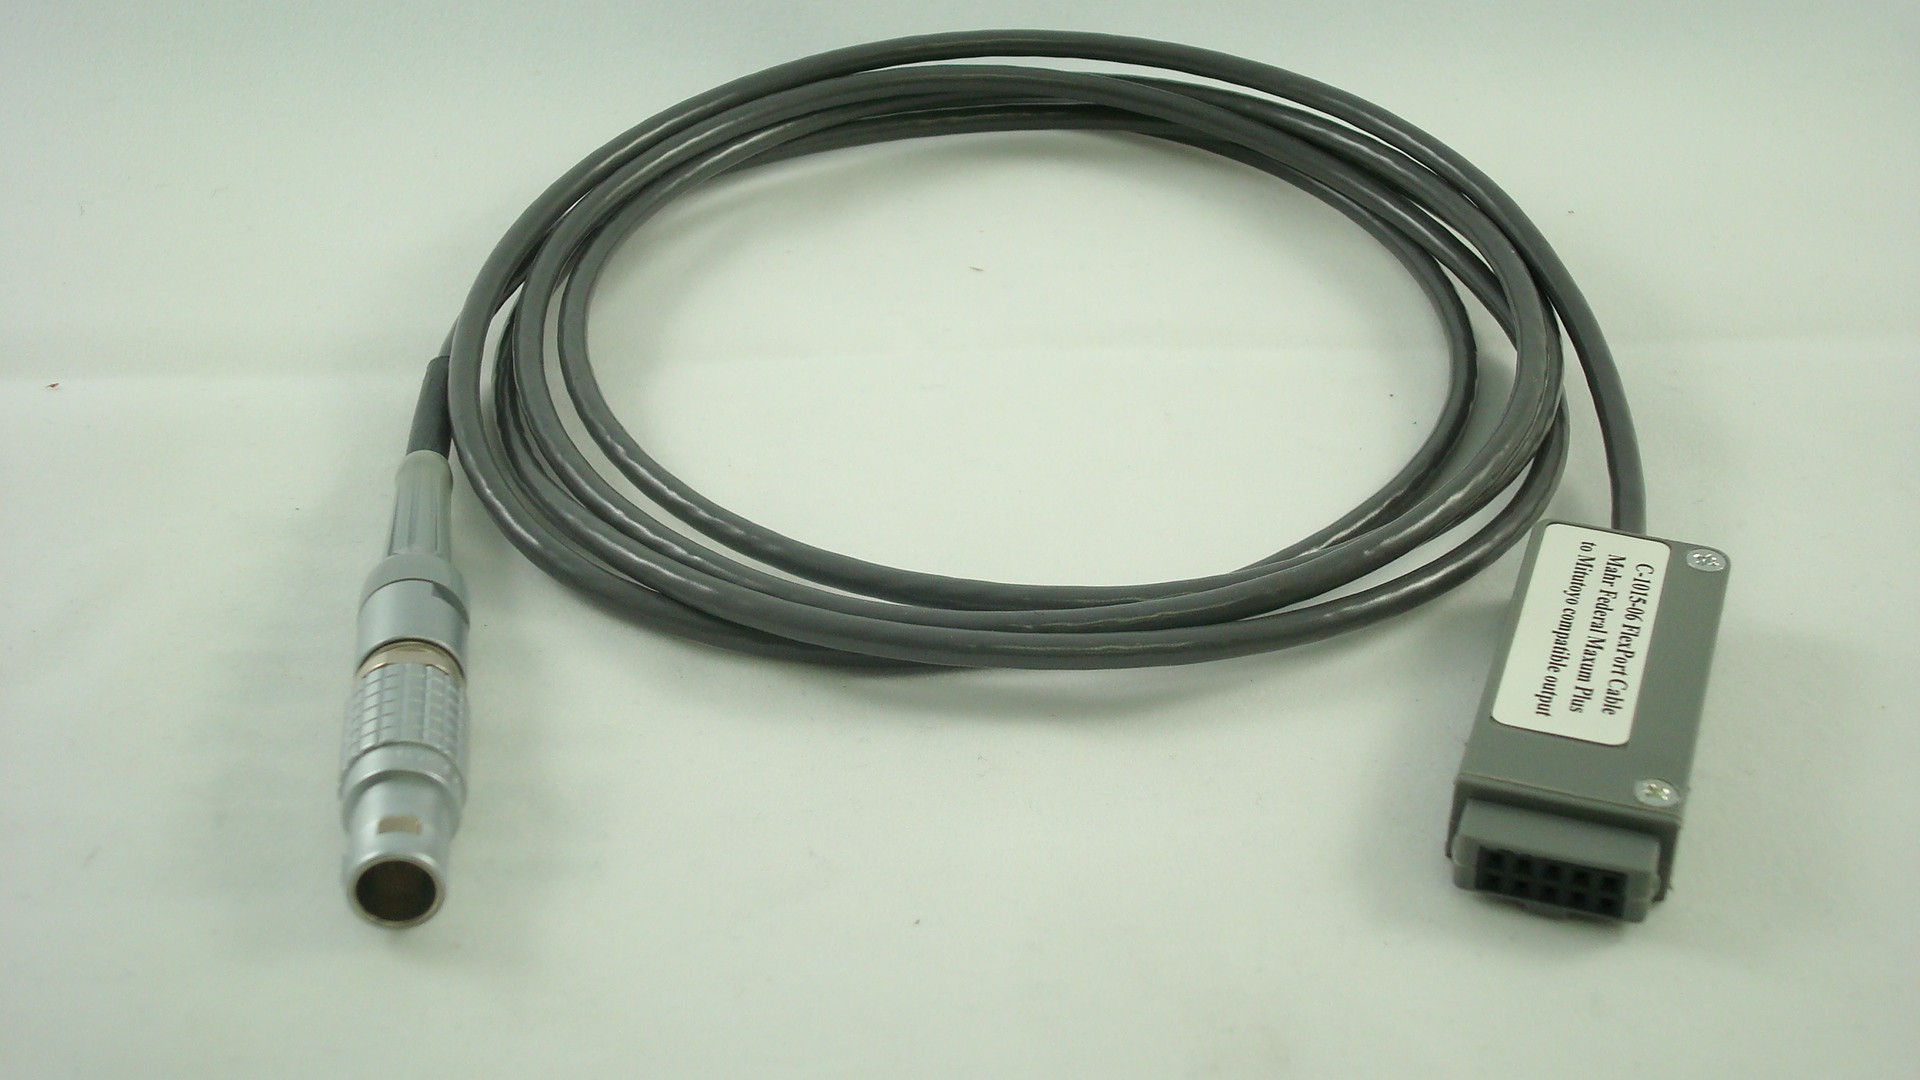 Mahr Federal Micro Maxum Gage Cable to 10 pin connector (6 ft)